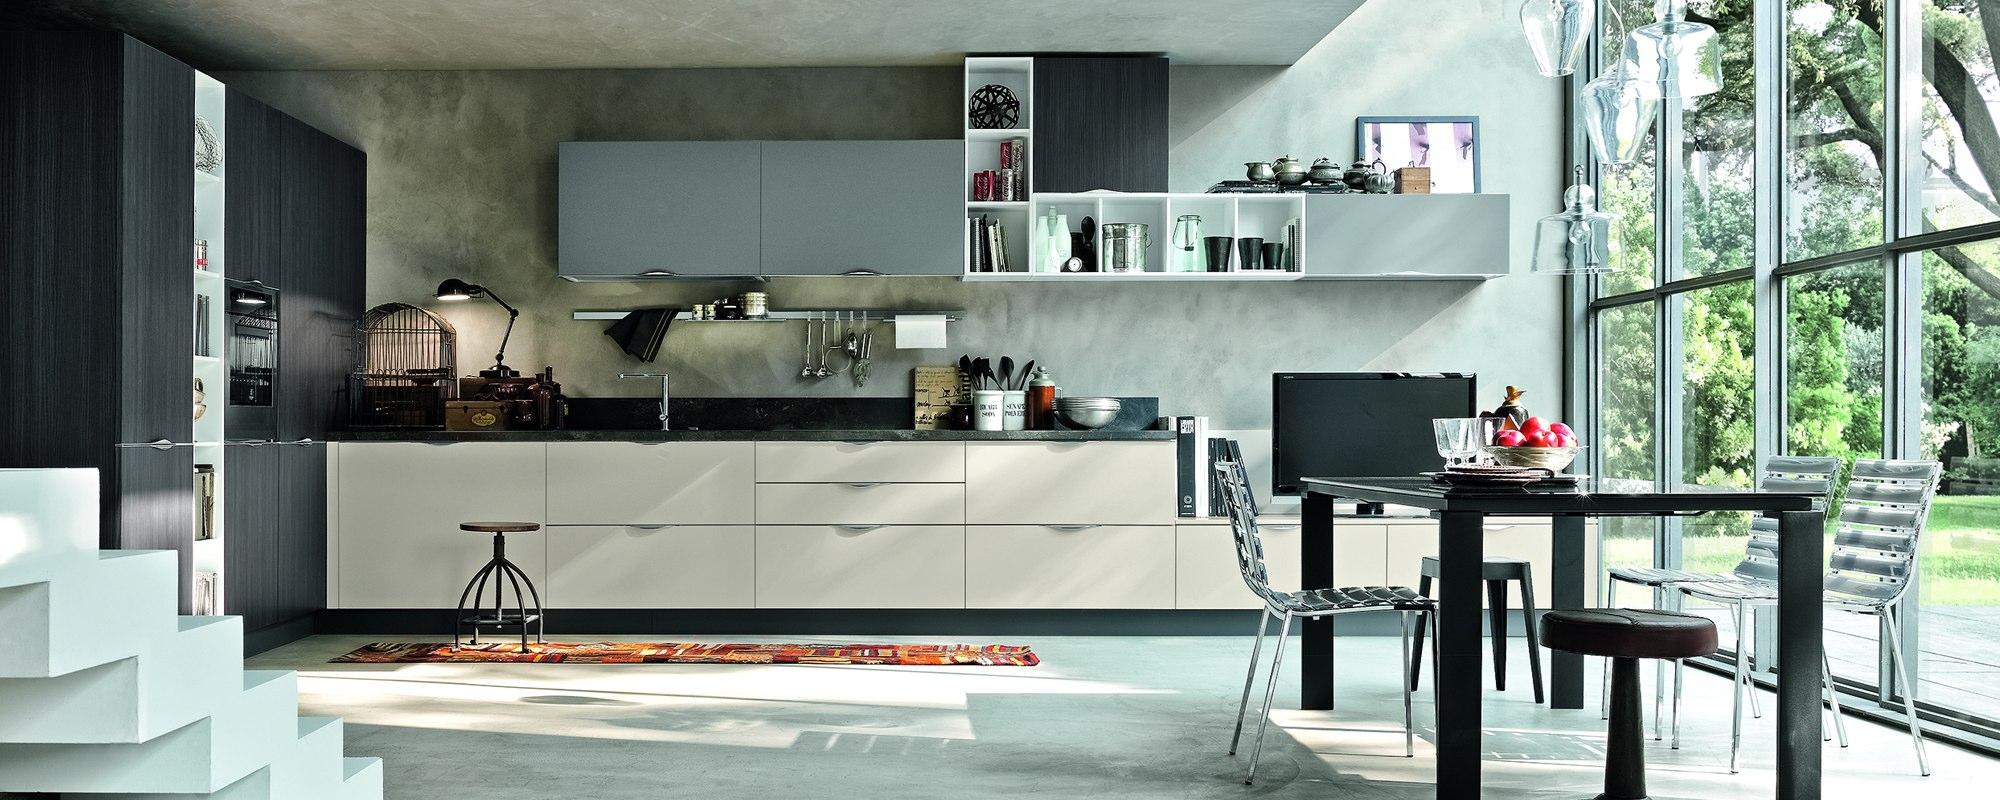 STOSA REPLAY NEXT Mobili Gala #8B5840 2000 800 Cucine Stosa Catalogo